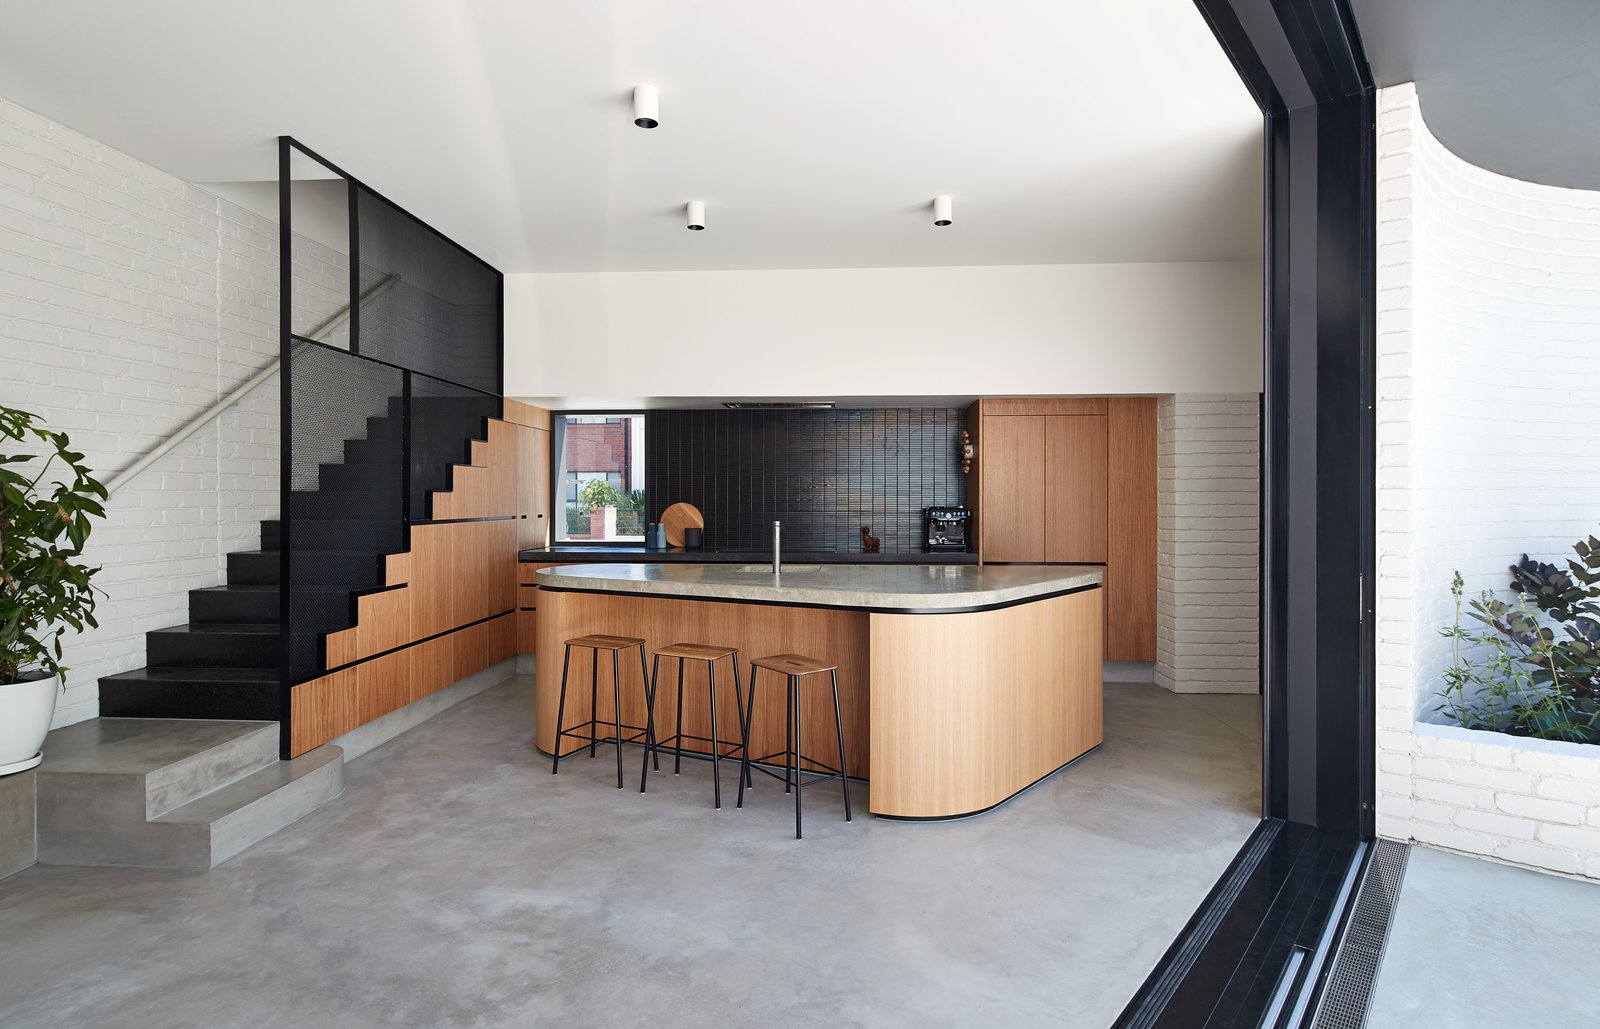 Kitchen, Undermount, Concrete, Ceiling, Concrete, Concrete, Refrigerator, and Wood In the new kitchen, oak timber veneer joinery unites concrete floors and counters.  Best Kitchen Concrete Refrigerator Wood Concrete Photos